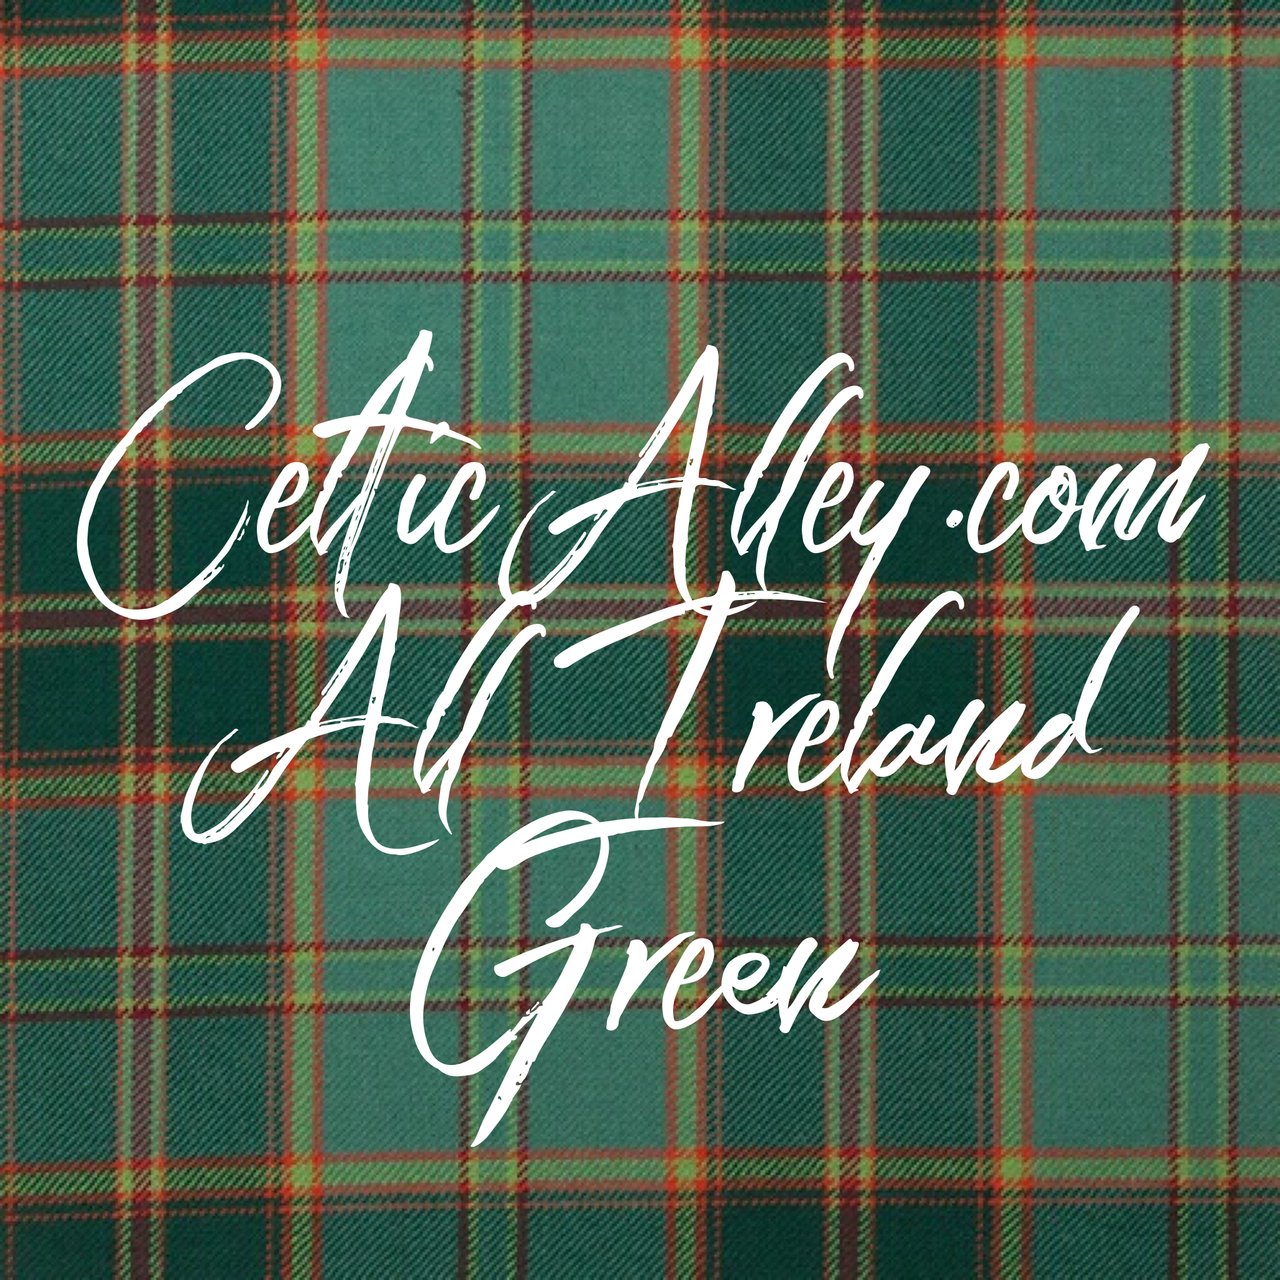 All Ireland Green Light Weight Tartan Fabric Material